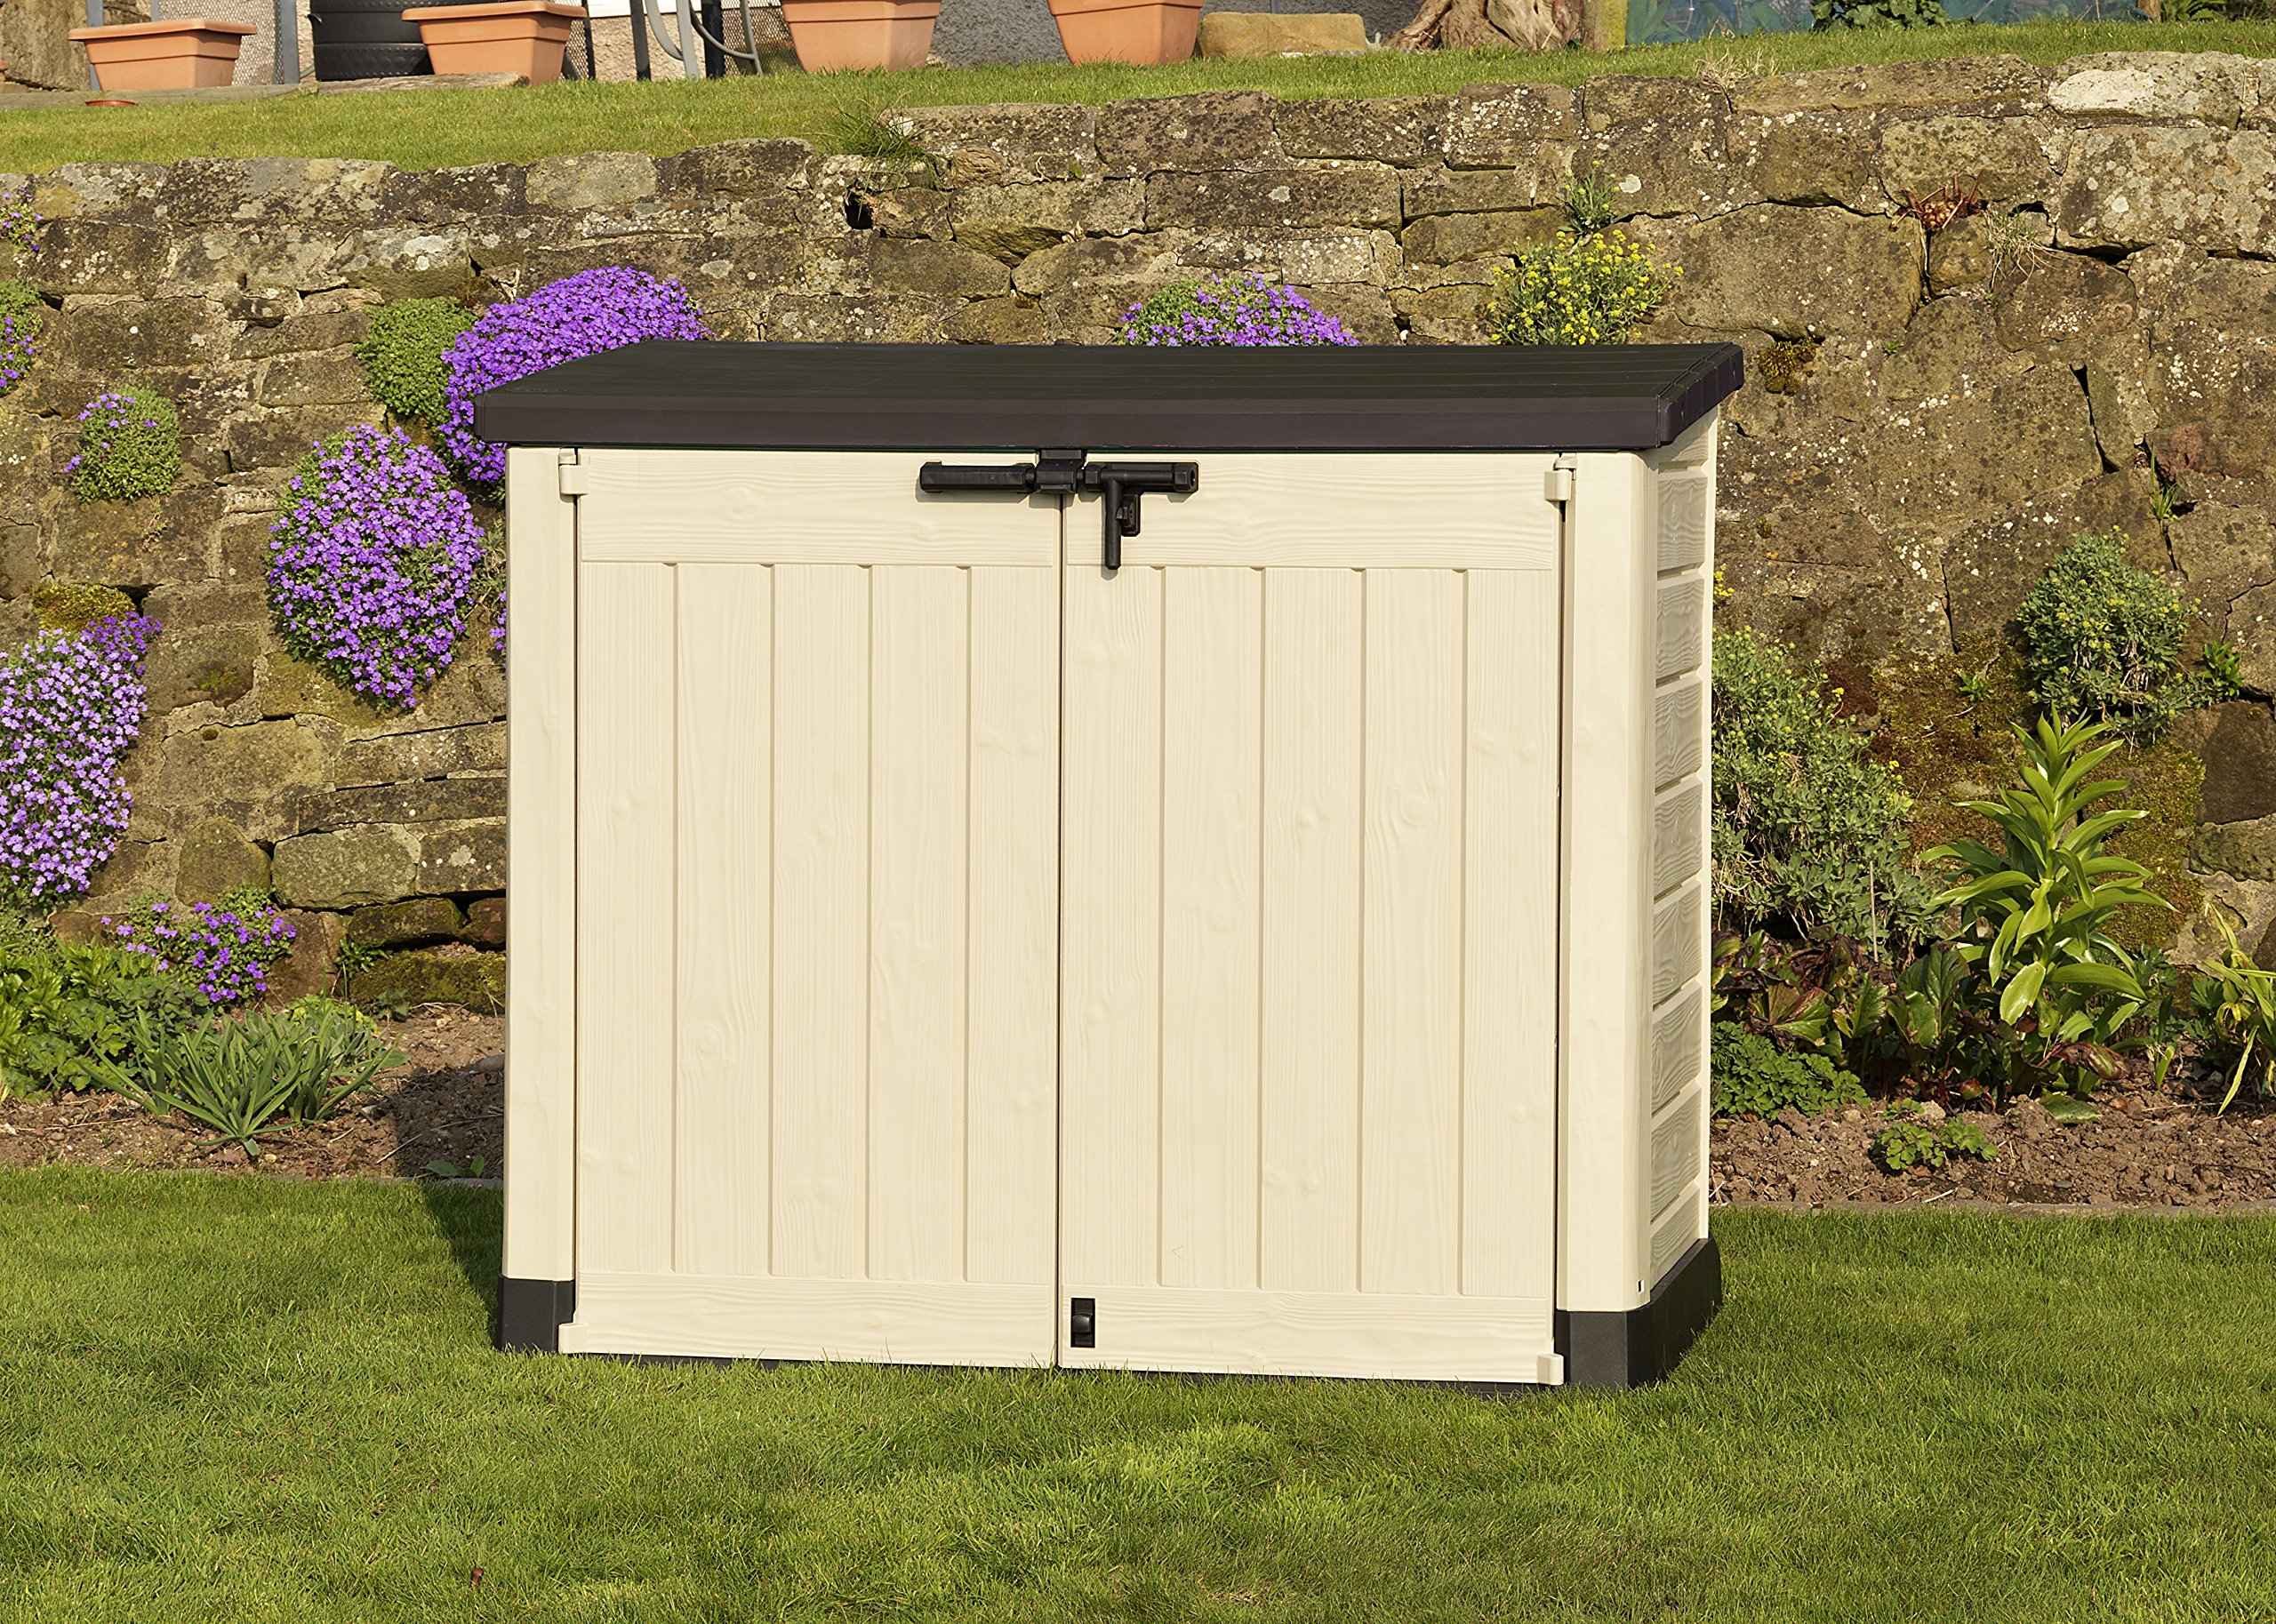 keter store it out max outdoor plastic garden storage shed 145 5 x 82 x 125 cm ebay. Black Bedroom Furniture Sets. Home Design Ideas